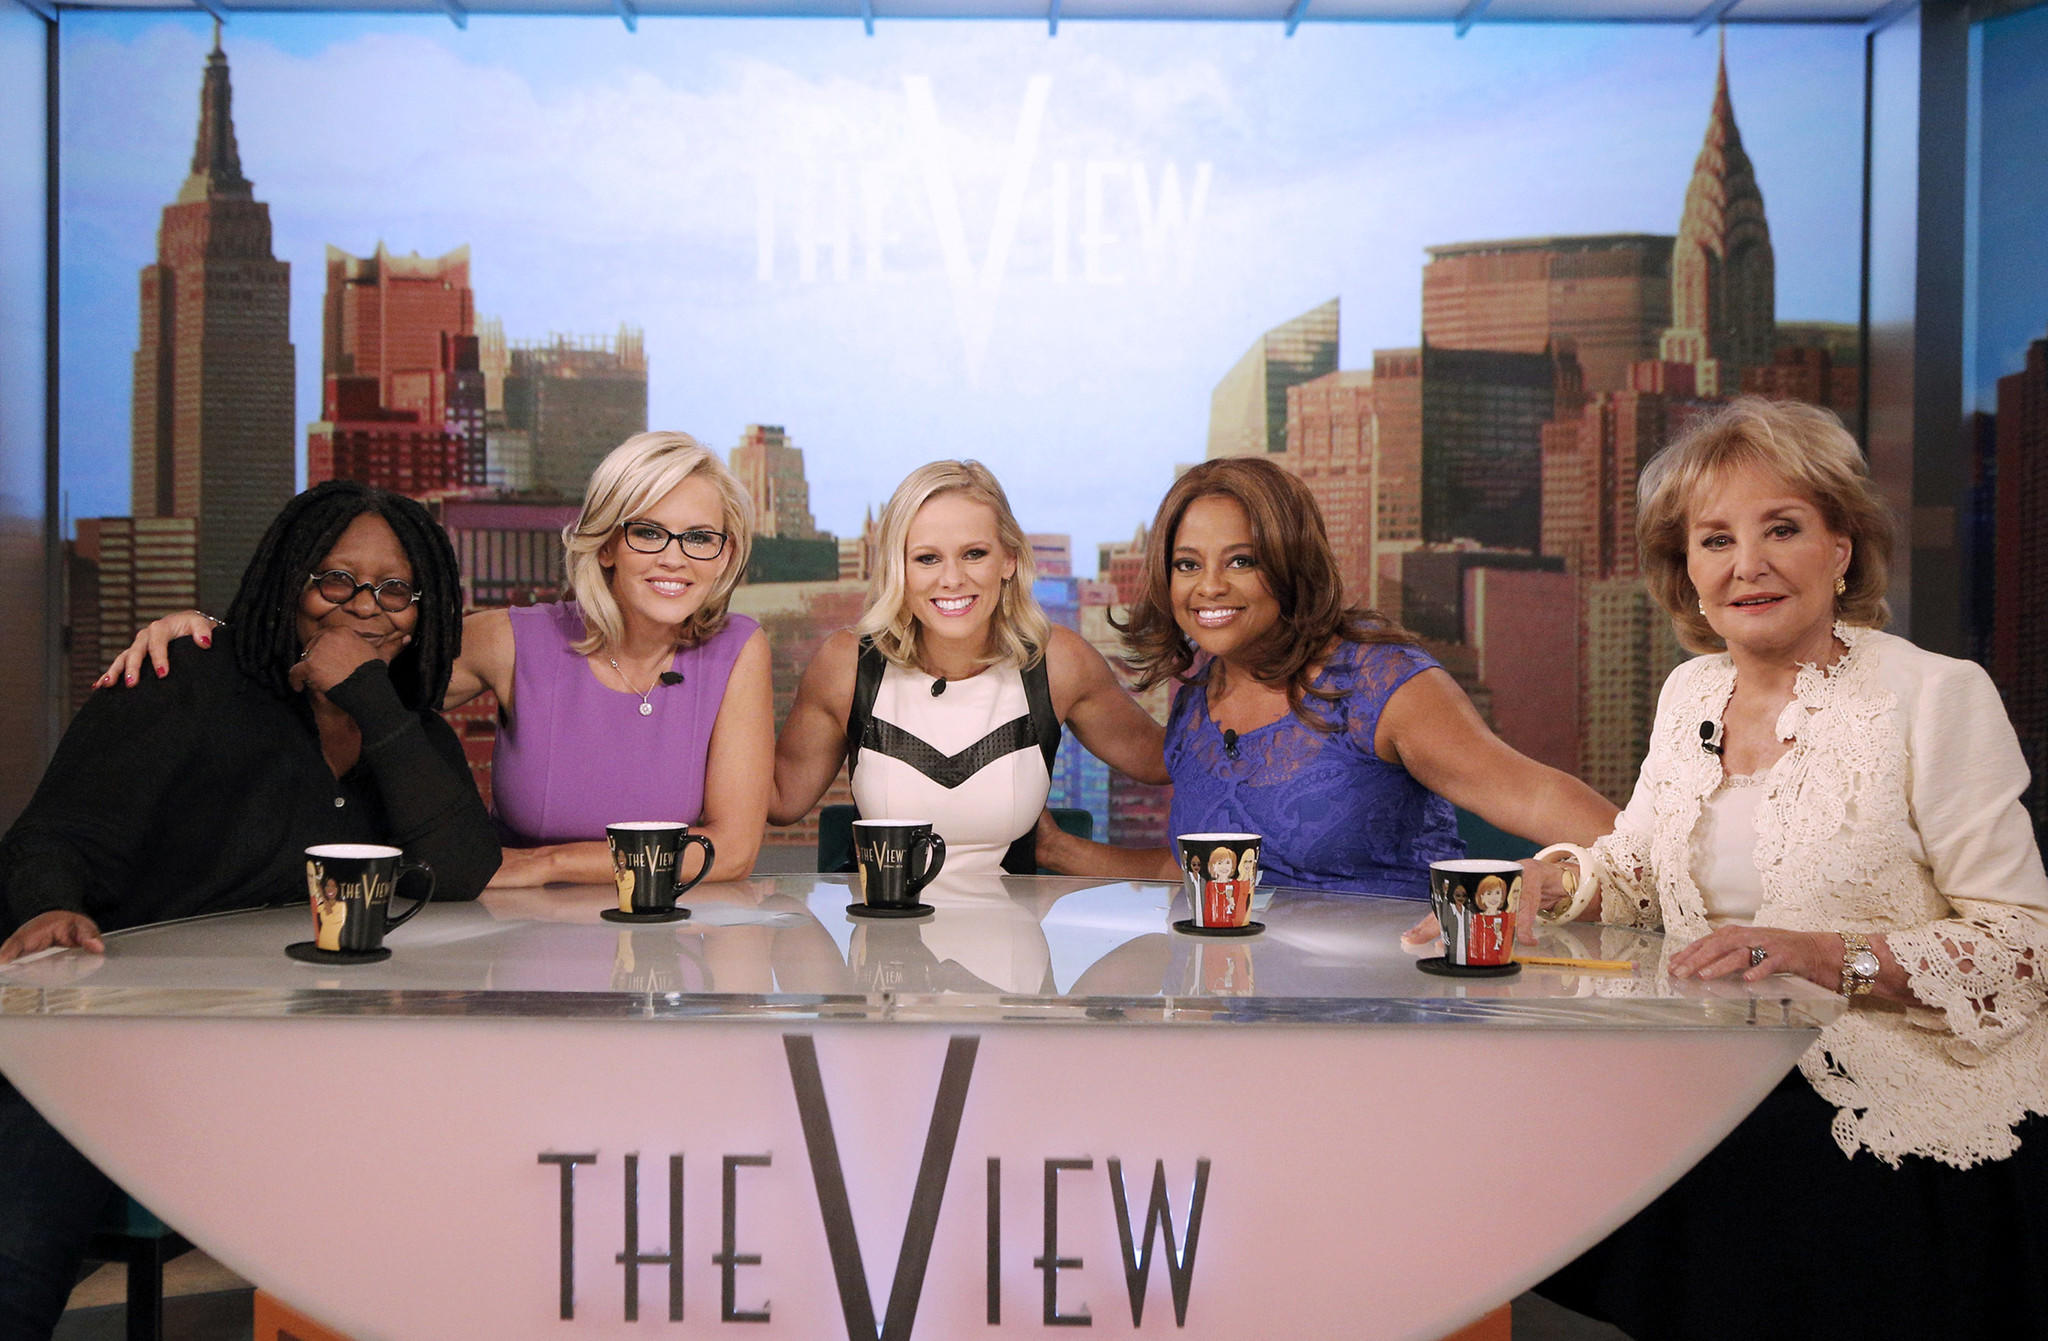 """The View's"" Barbara Walters, right, with Whoopi Goldberg, left, Jenny McCarthy, political commentator/guest Margaret Hoover and Sherri Shepherd. The ABC show will gather all 11 past and present co-hosts to salute the retiring Walters in a first-ever reunion that will air May 15."